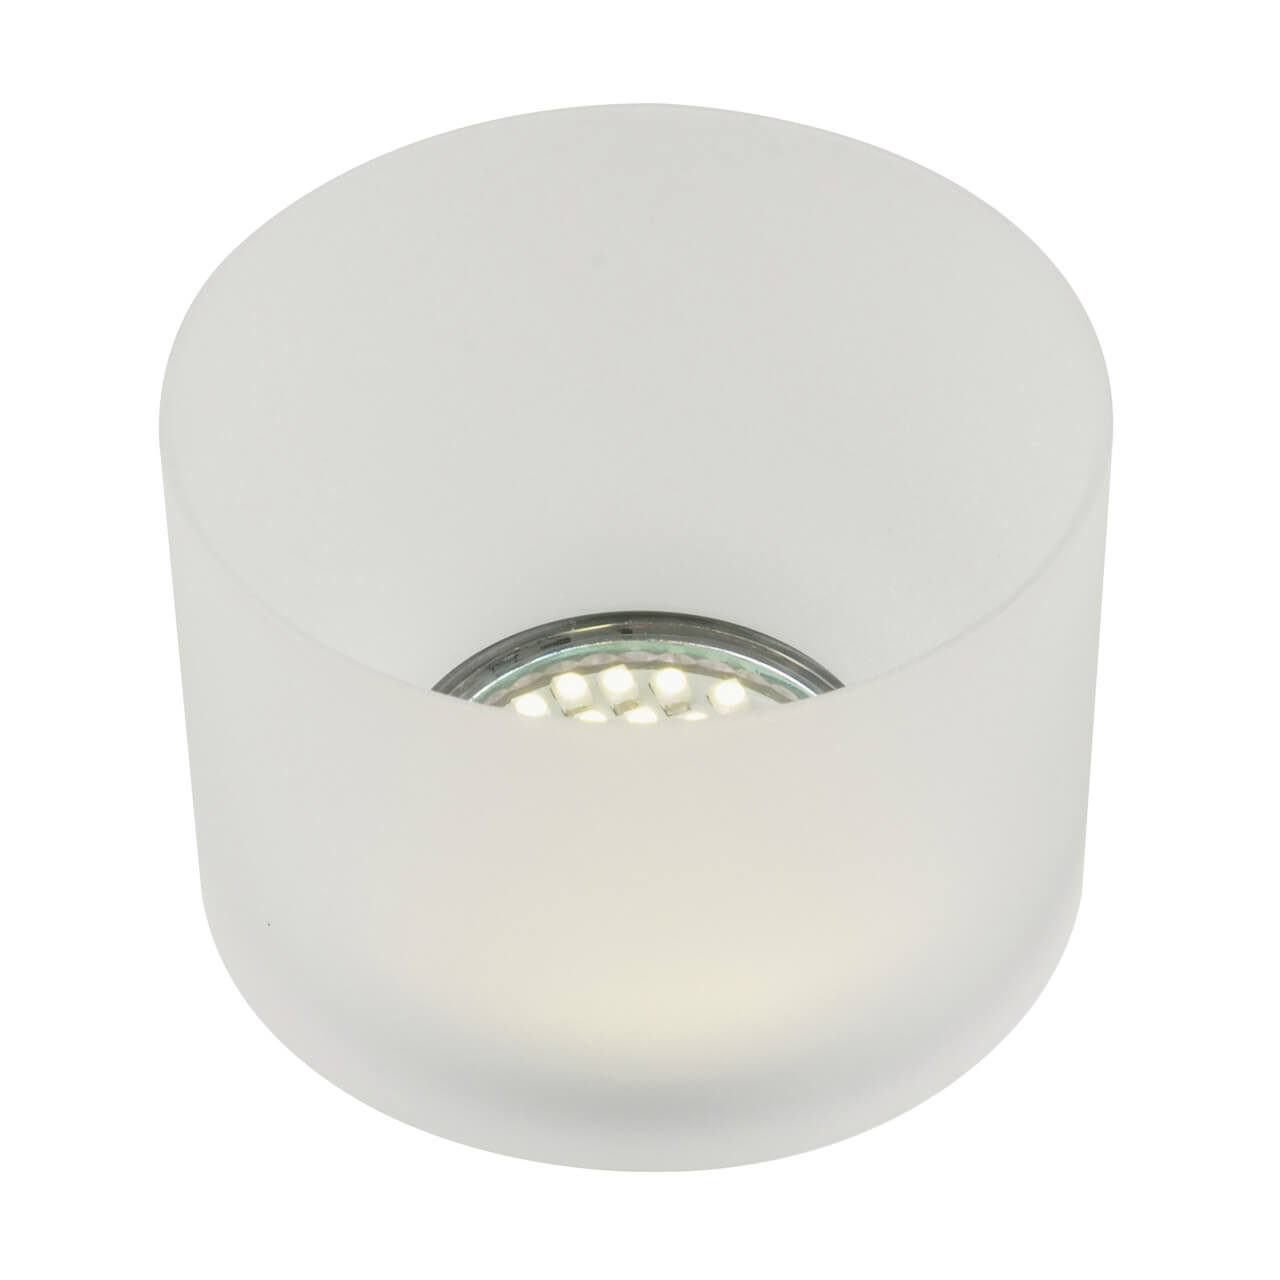 Светильник Fametto DLS-N102 GU10 white/mat Nuvola